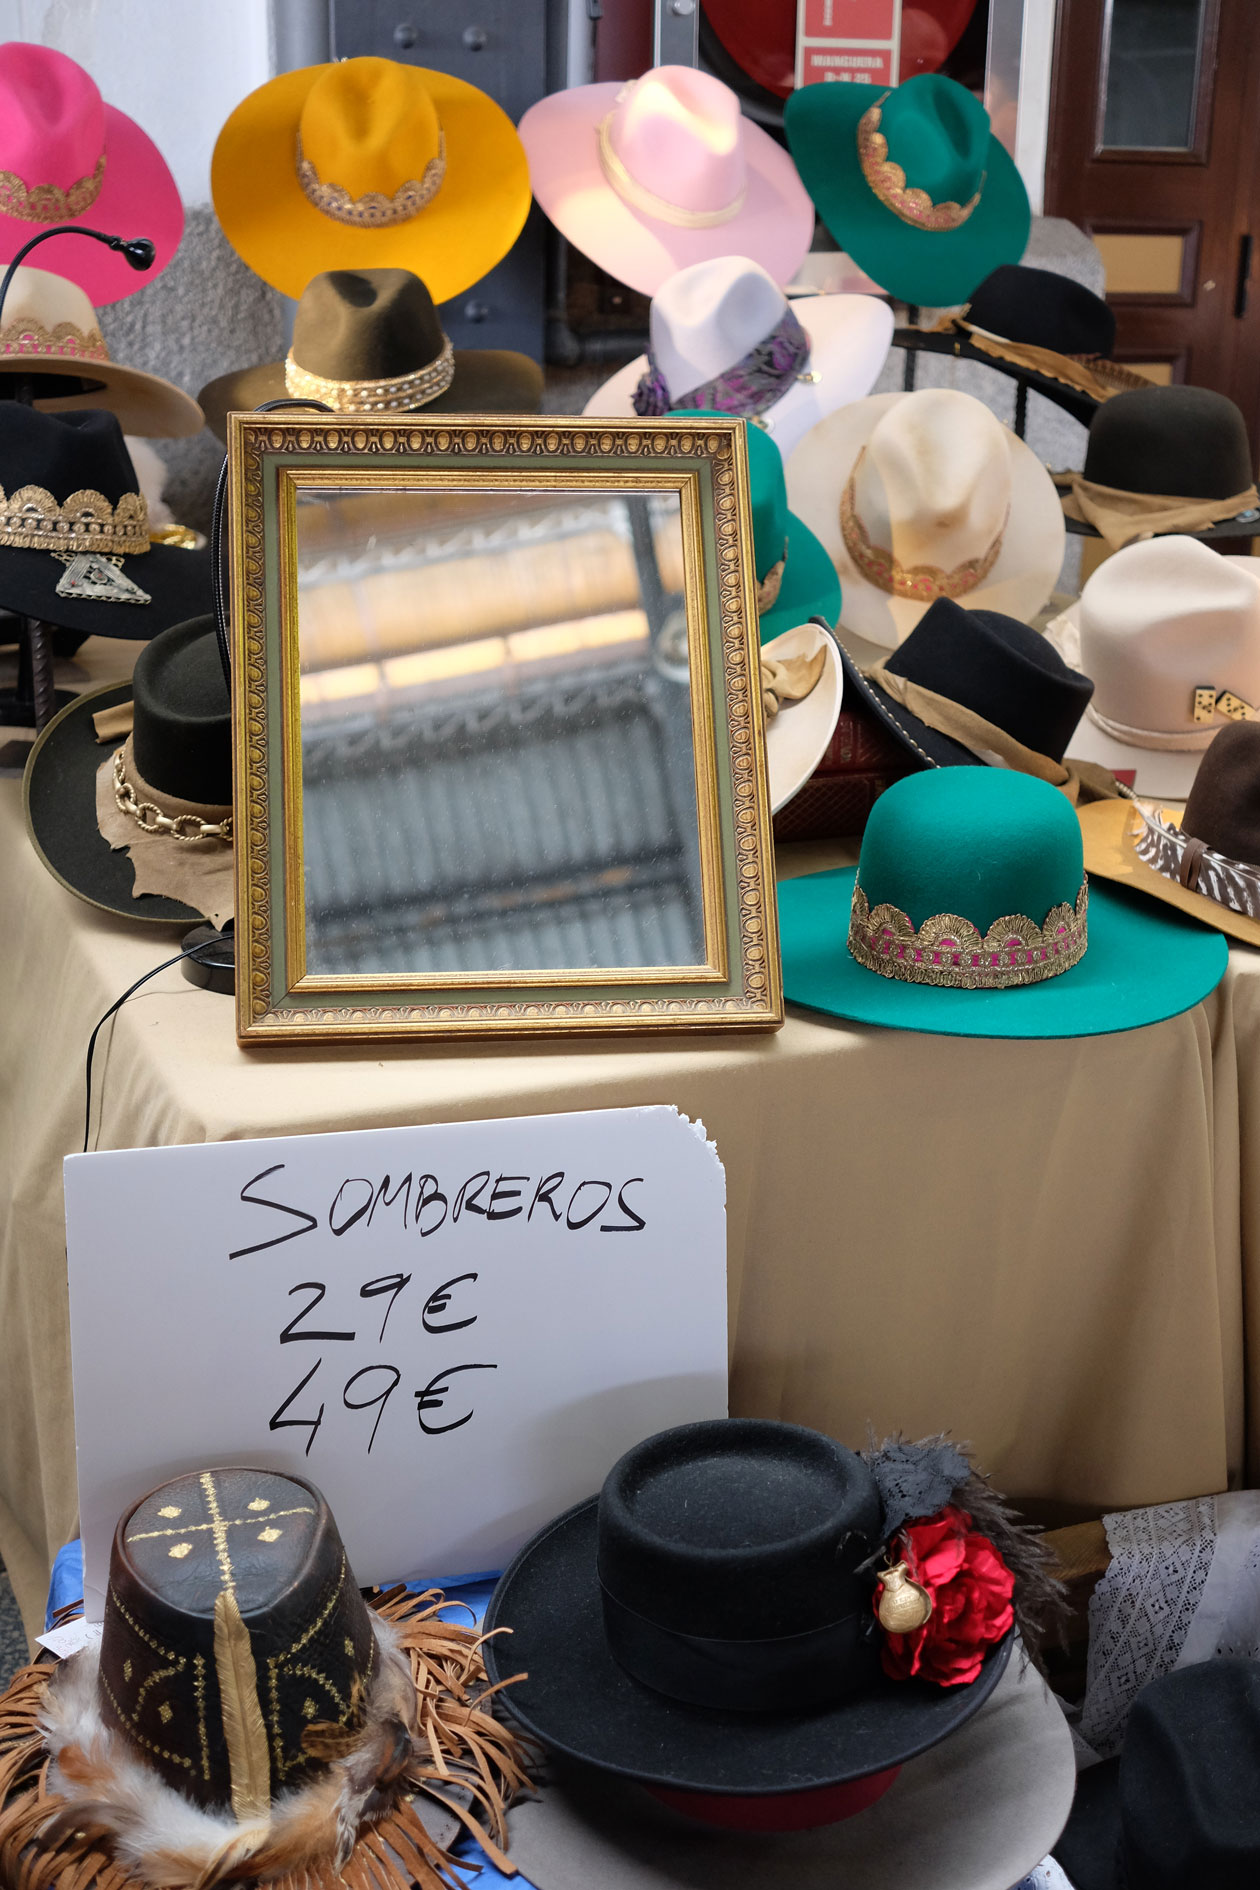 If you're looking for vintage hats in Madrid, the Mercado de Motores is the place to be